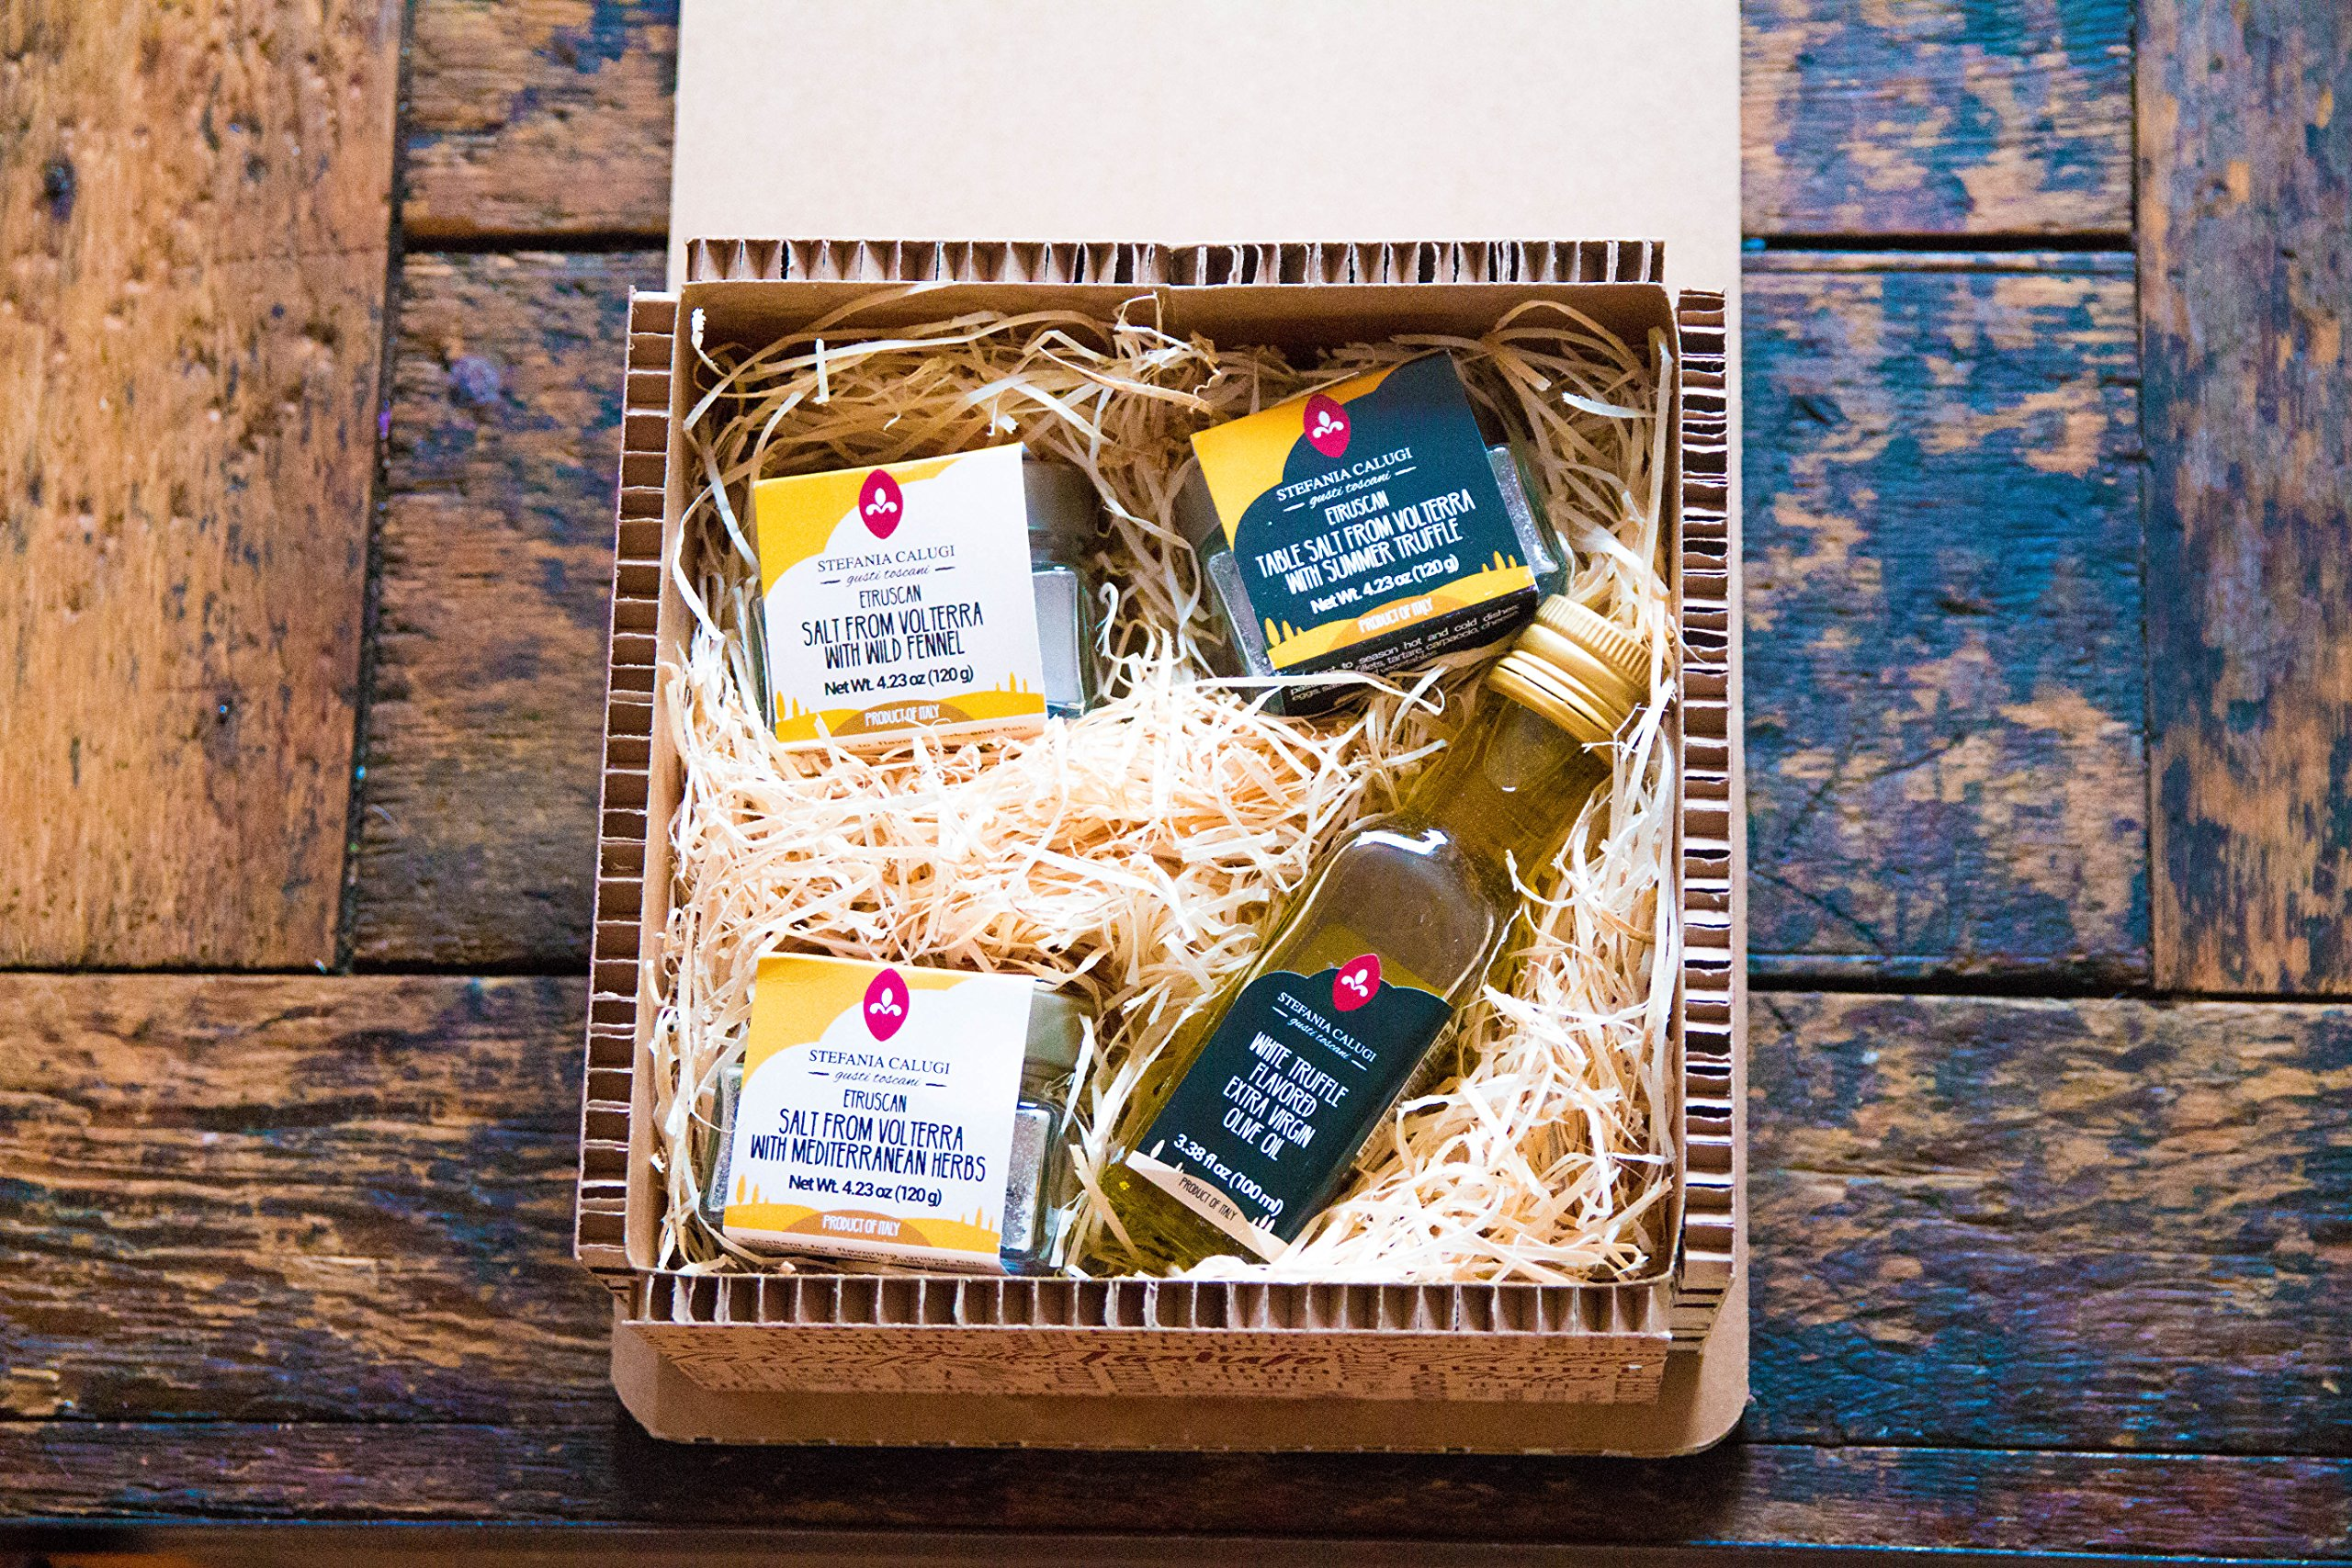 Italian Salt Selection and Truffle Olive Oil Pantry Gift Bundle by Stefania Calugi. Three Varieties of Volterra Table Salts (Truffle, Wild Fennel, Garden Herbs) and Truffle Olive Oil.